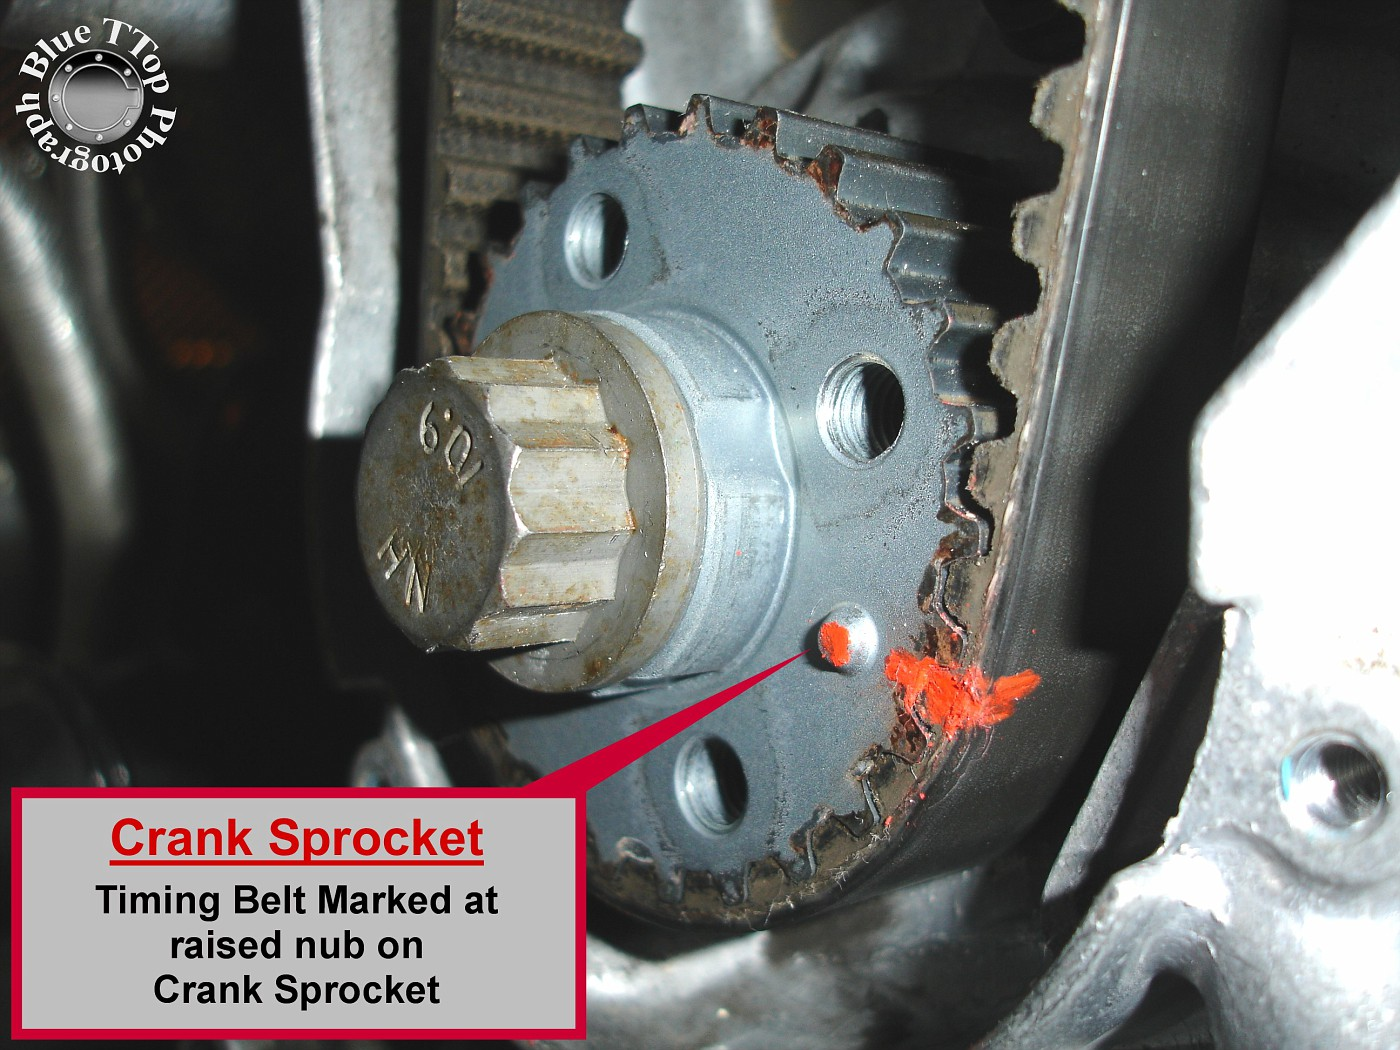 Work the Timing Belt off the Water Pump and Crank Sprocket by alternating  pulls at each location.